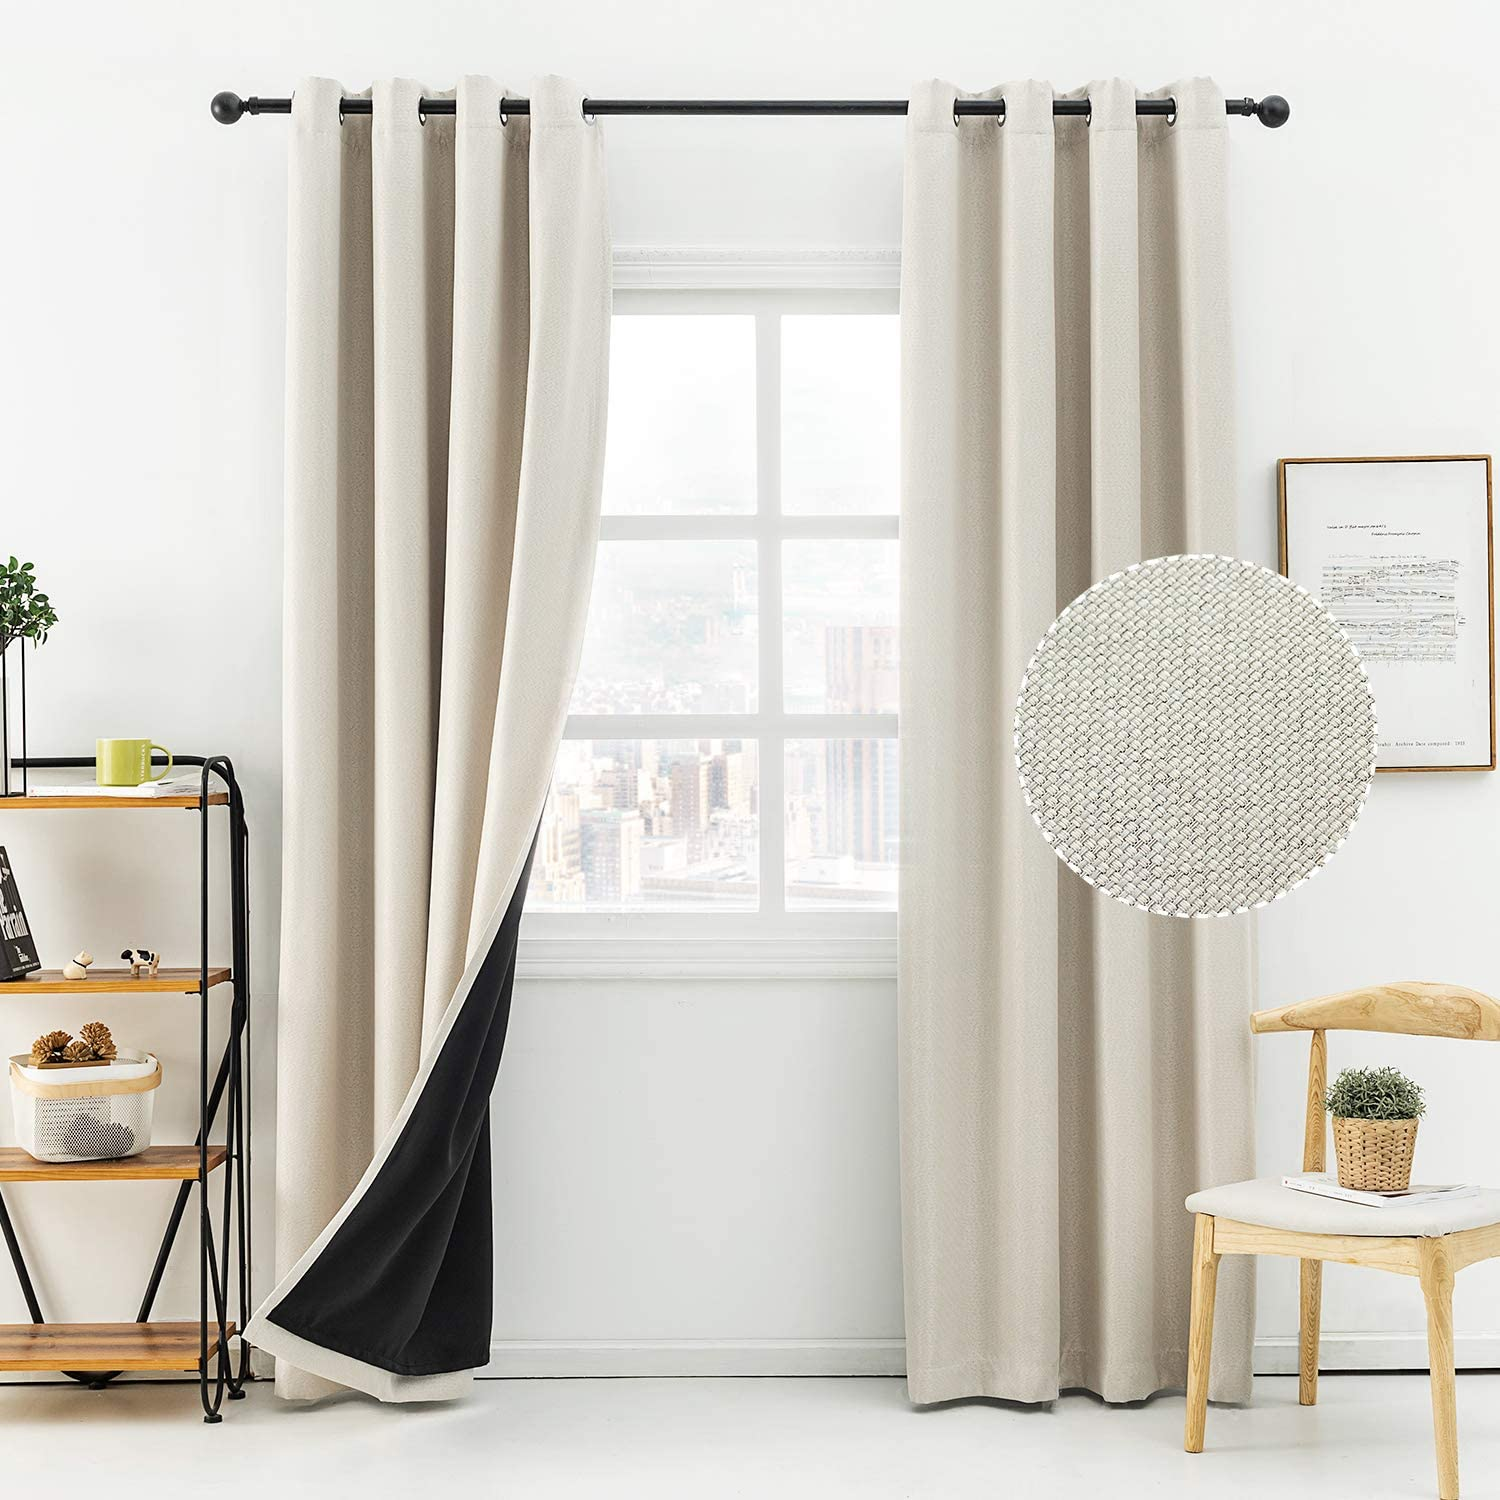 Anjee Linen Blackout Curtains for Bedroom 63 Inches 100% Room Darkening Window Curtain Burlap Drapes Noise Reducing Thermal Insulated Drapery Panels Home Decor Gifts,Beige 52x63 Inches